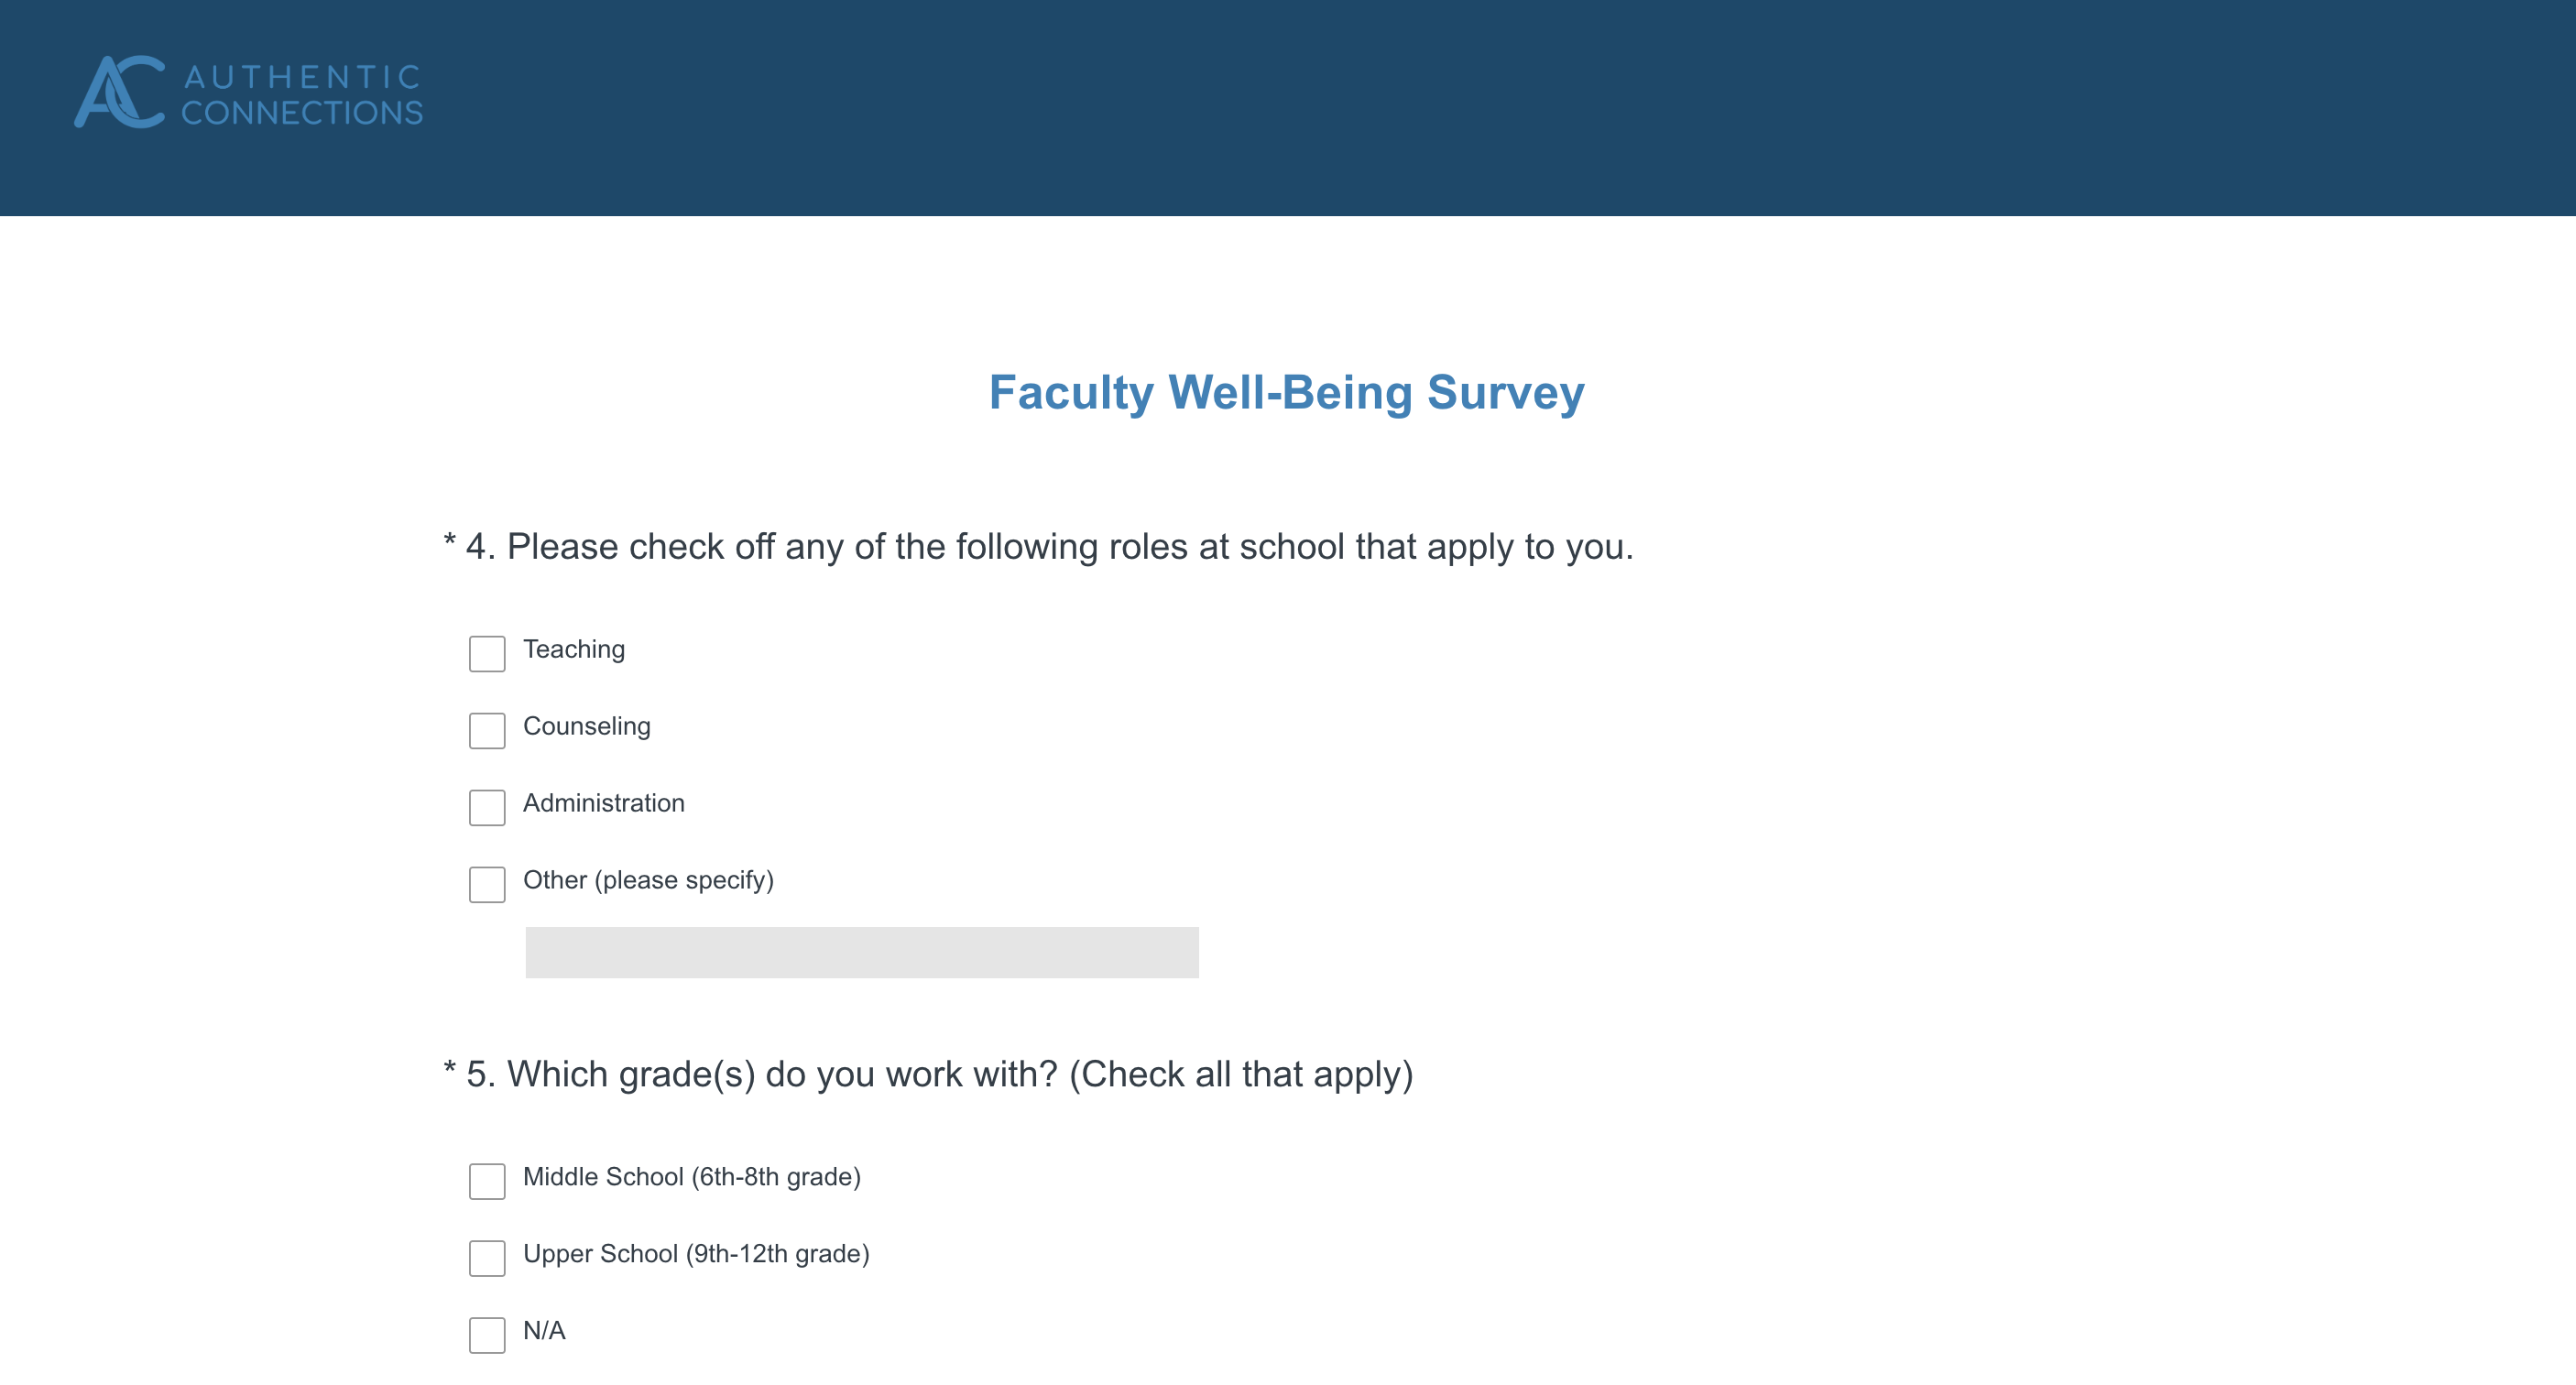 Faculty Wellbeing Survey